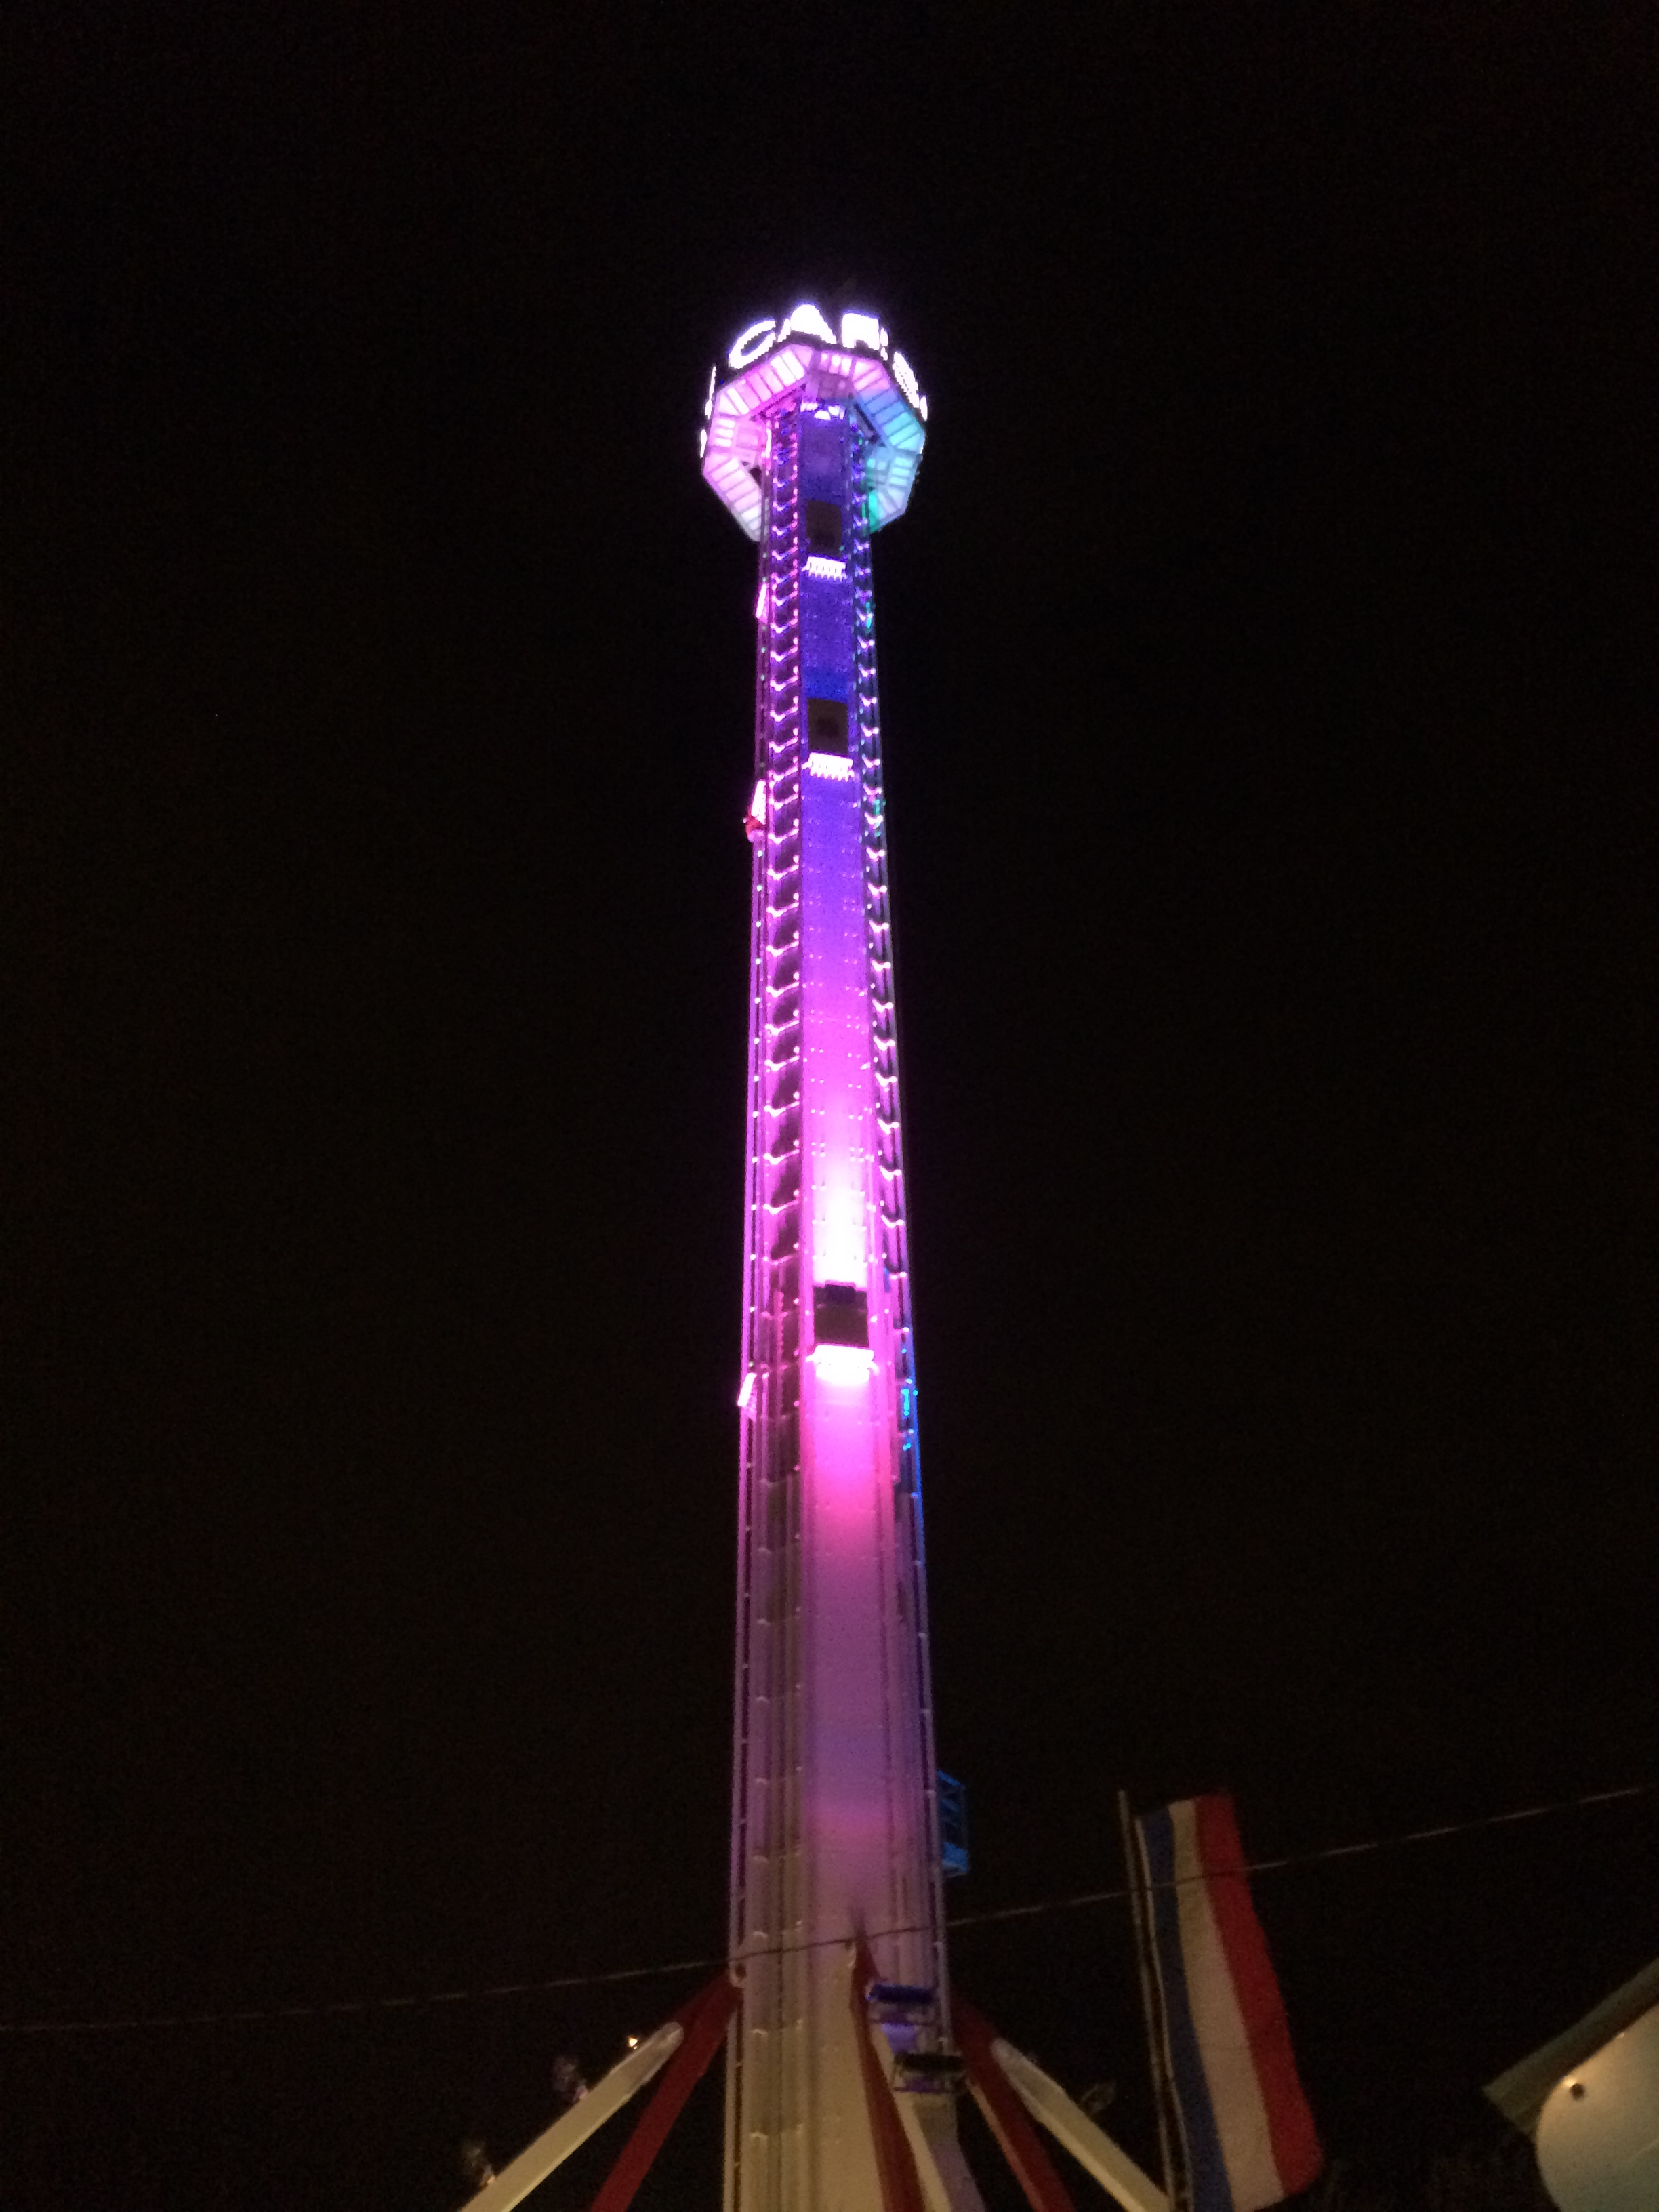 Drop Tower with Video Wall, World of Wonderland - Amarillo, TX